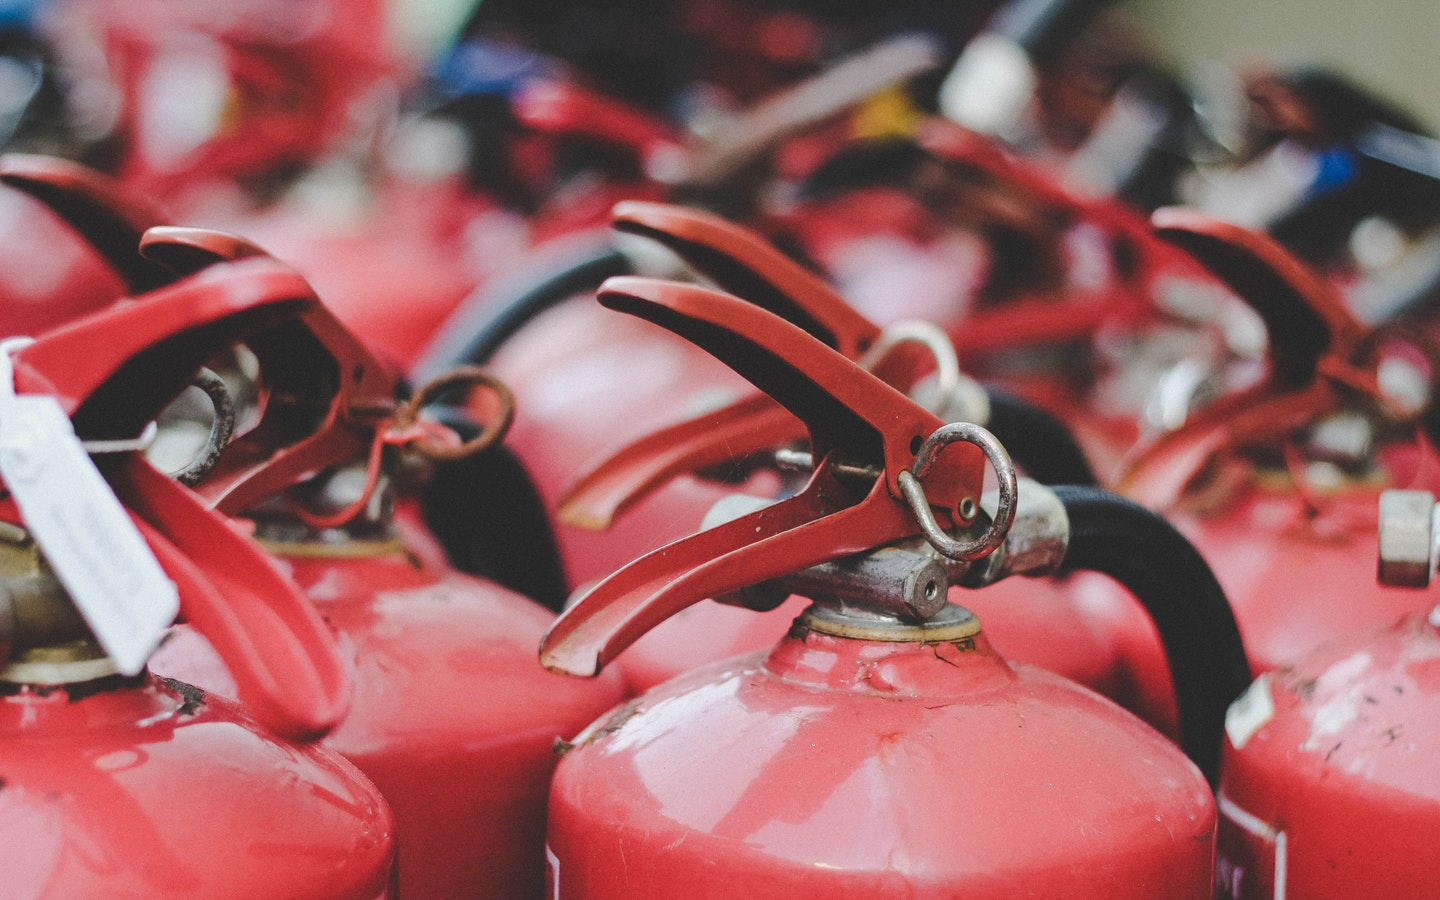 Bproperty's Campaign to Raise Fire Safety Awareness in Real Estate